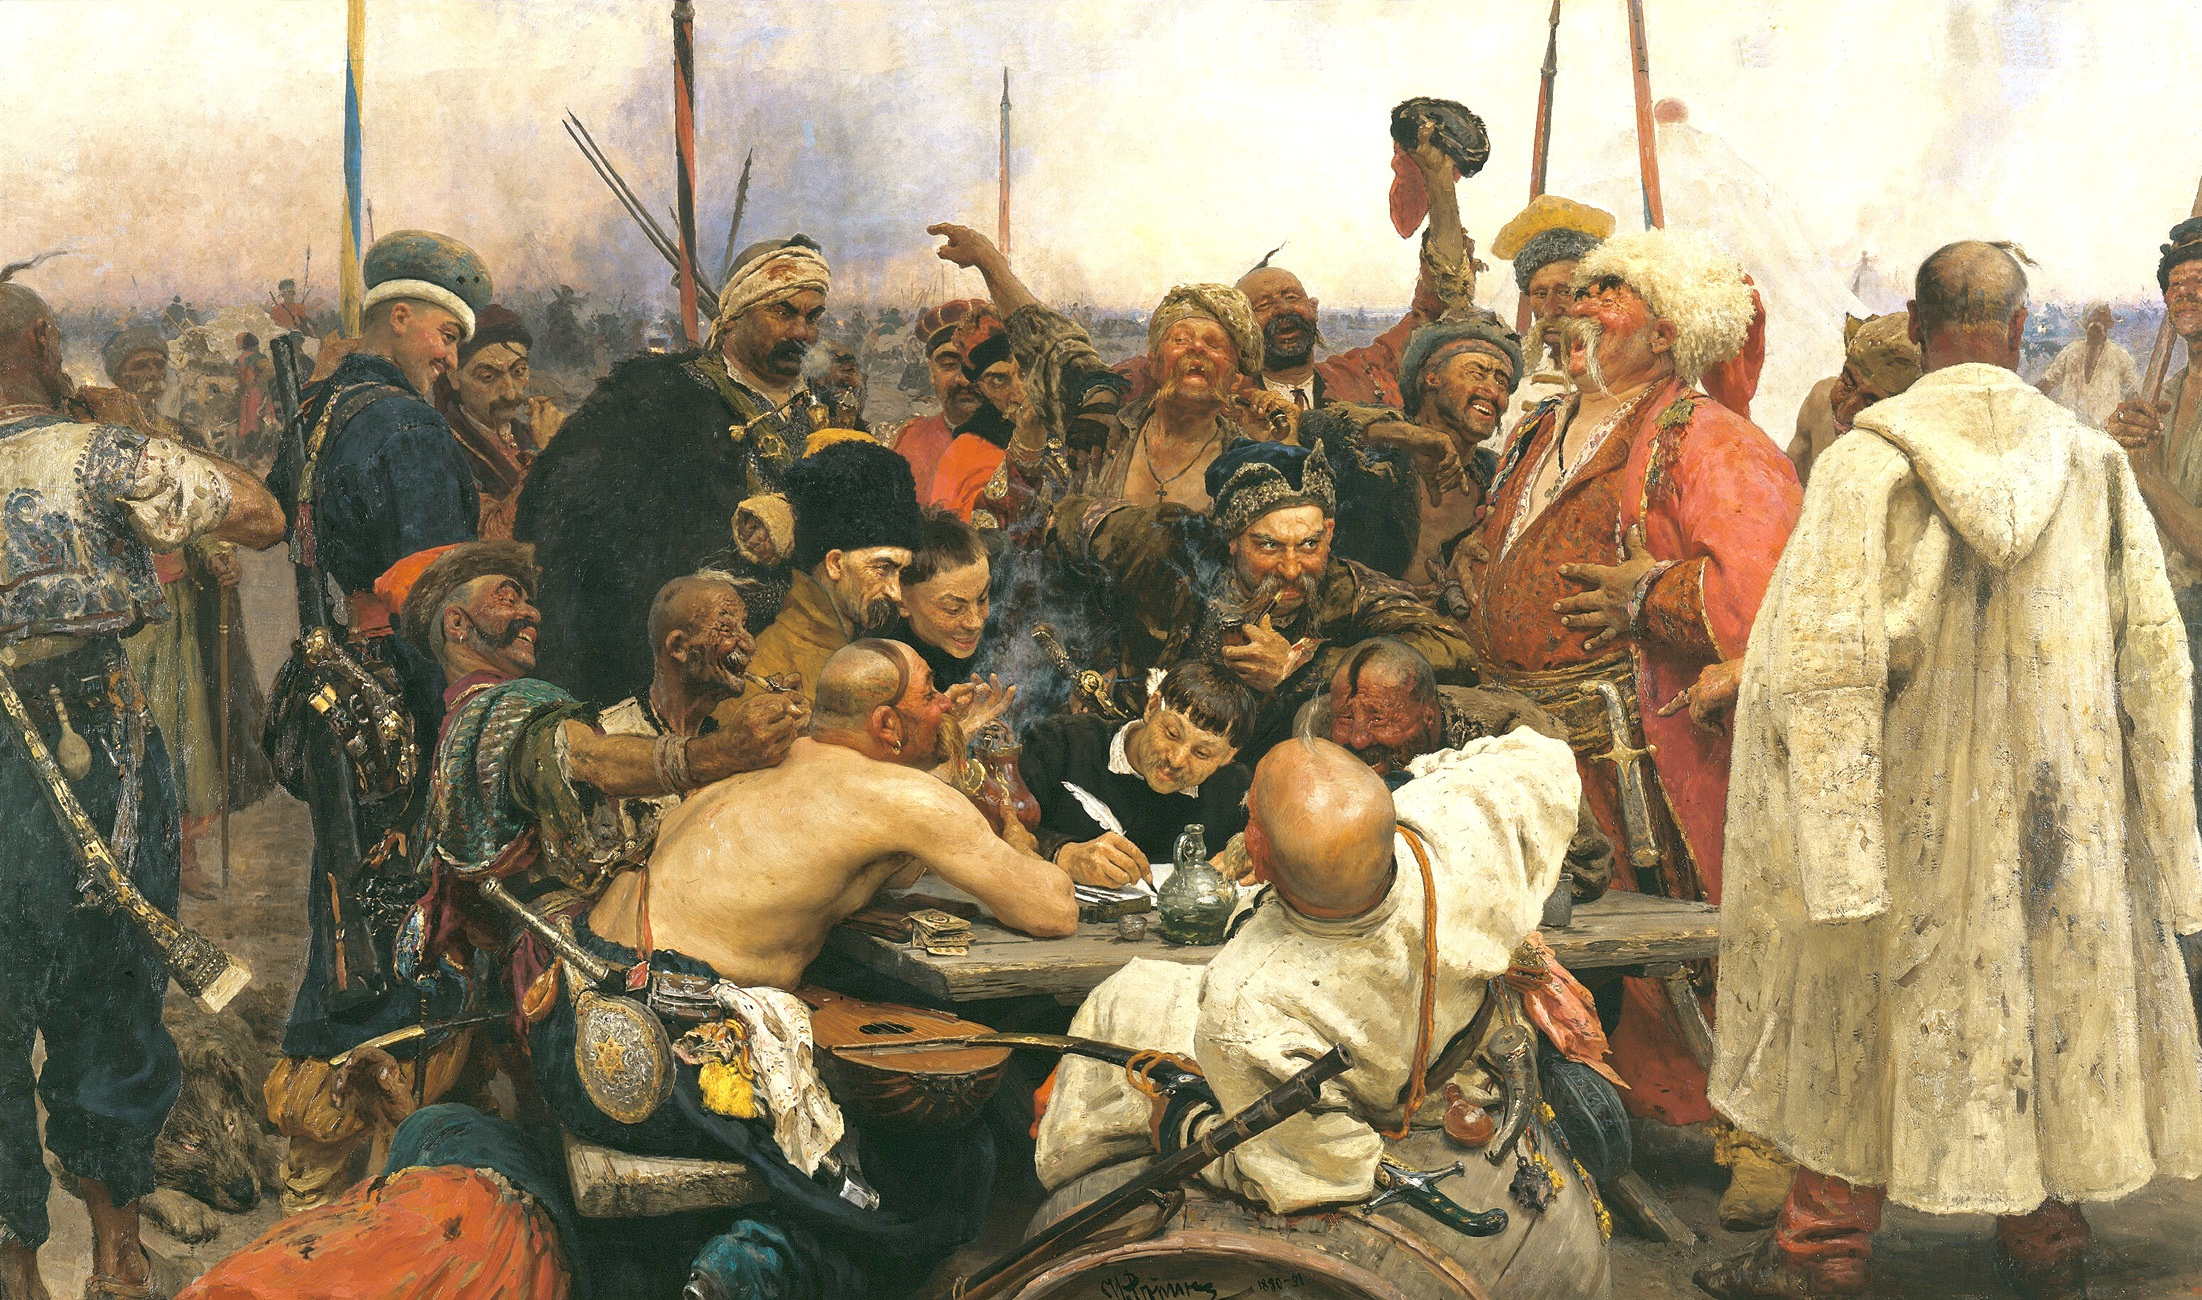 Reply of the Zaporozhian Cossacks to Sultan Mehmed IV of the Ottoman Empire, Repin